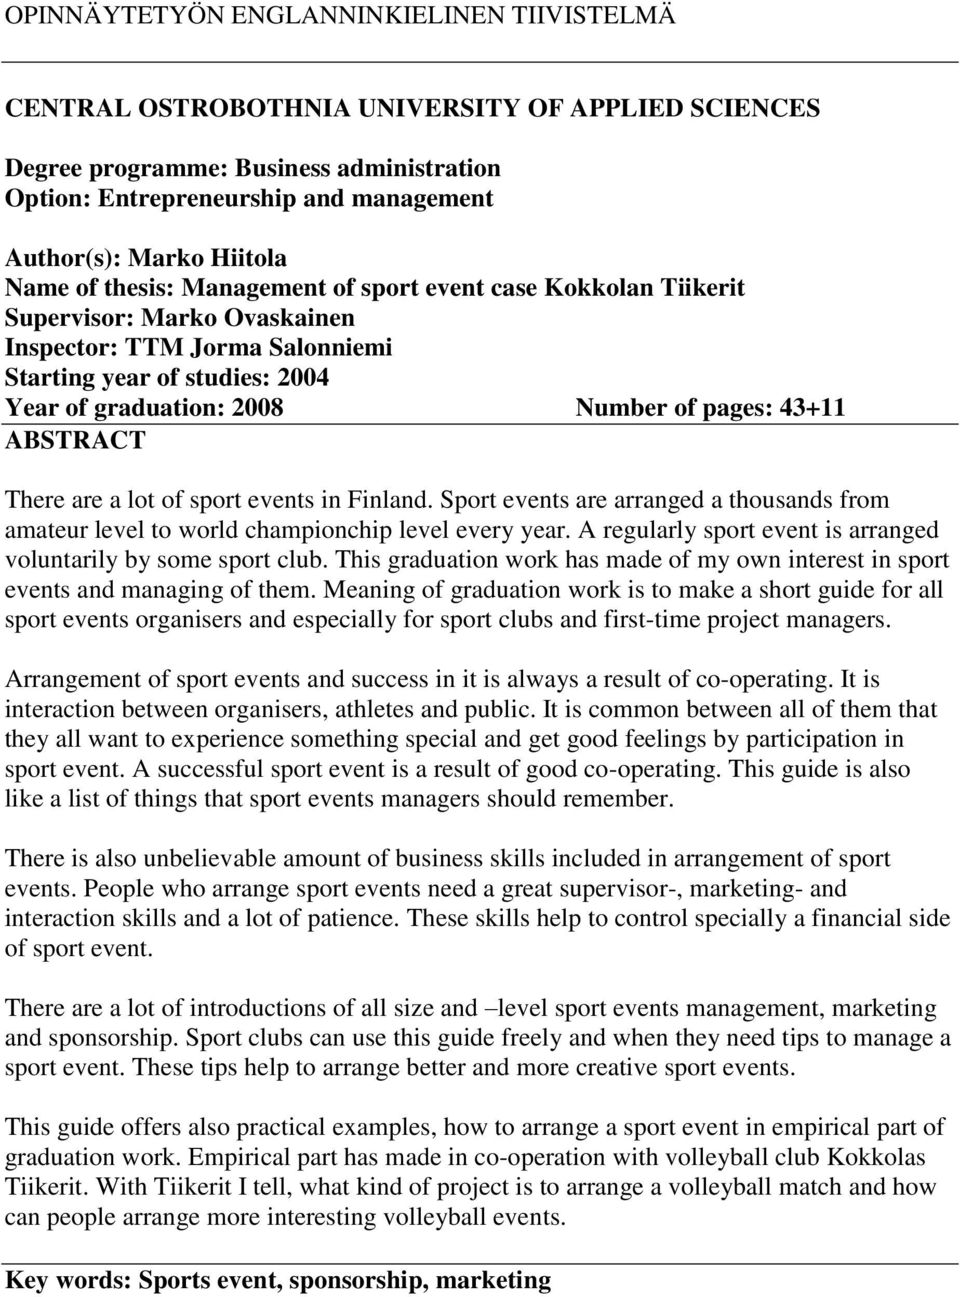 pages: 43+11 ABSTRACT There are a lot of sport events in Finland. Sport events are arranged a thousands from amateur level to world championchip level every year.